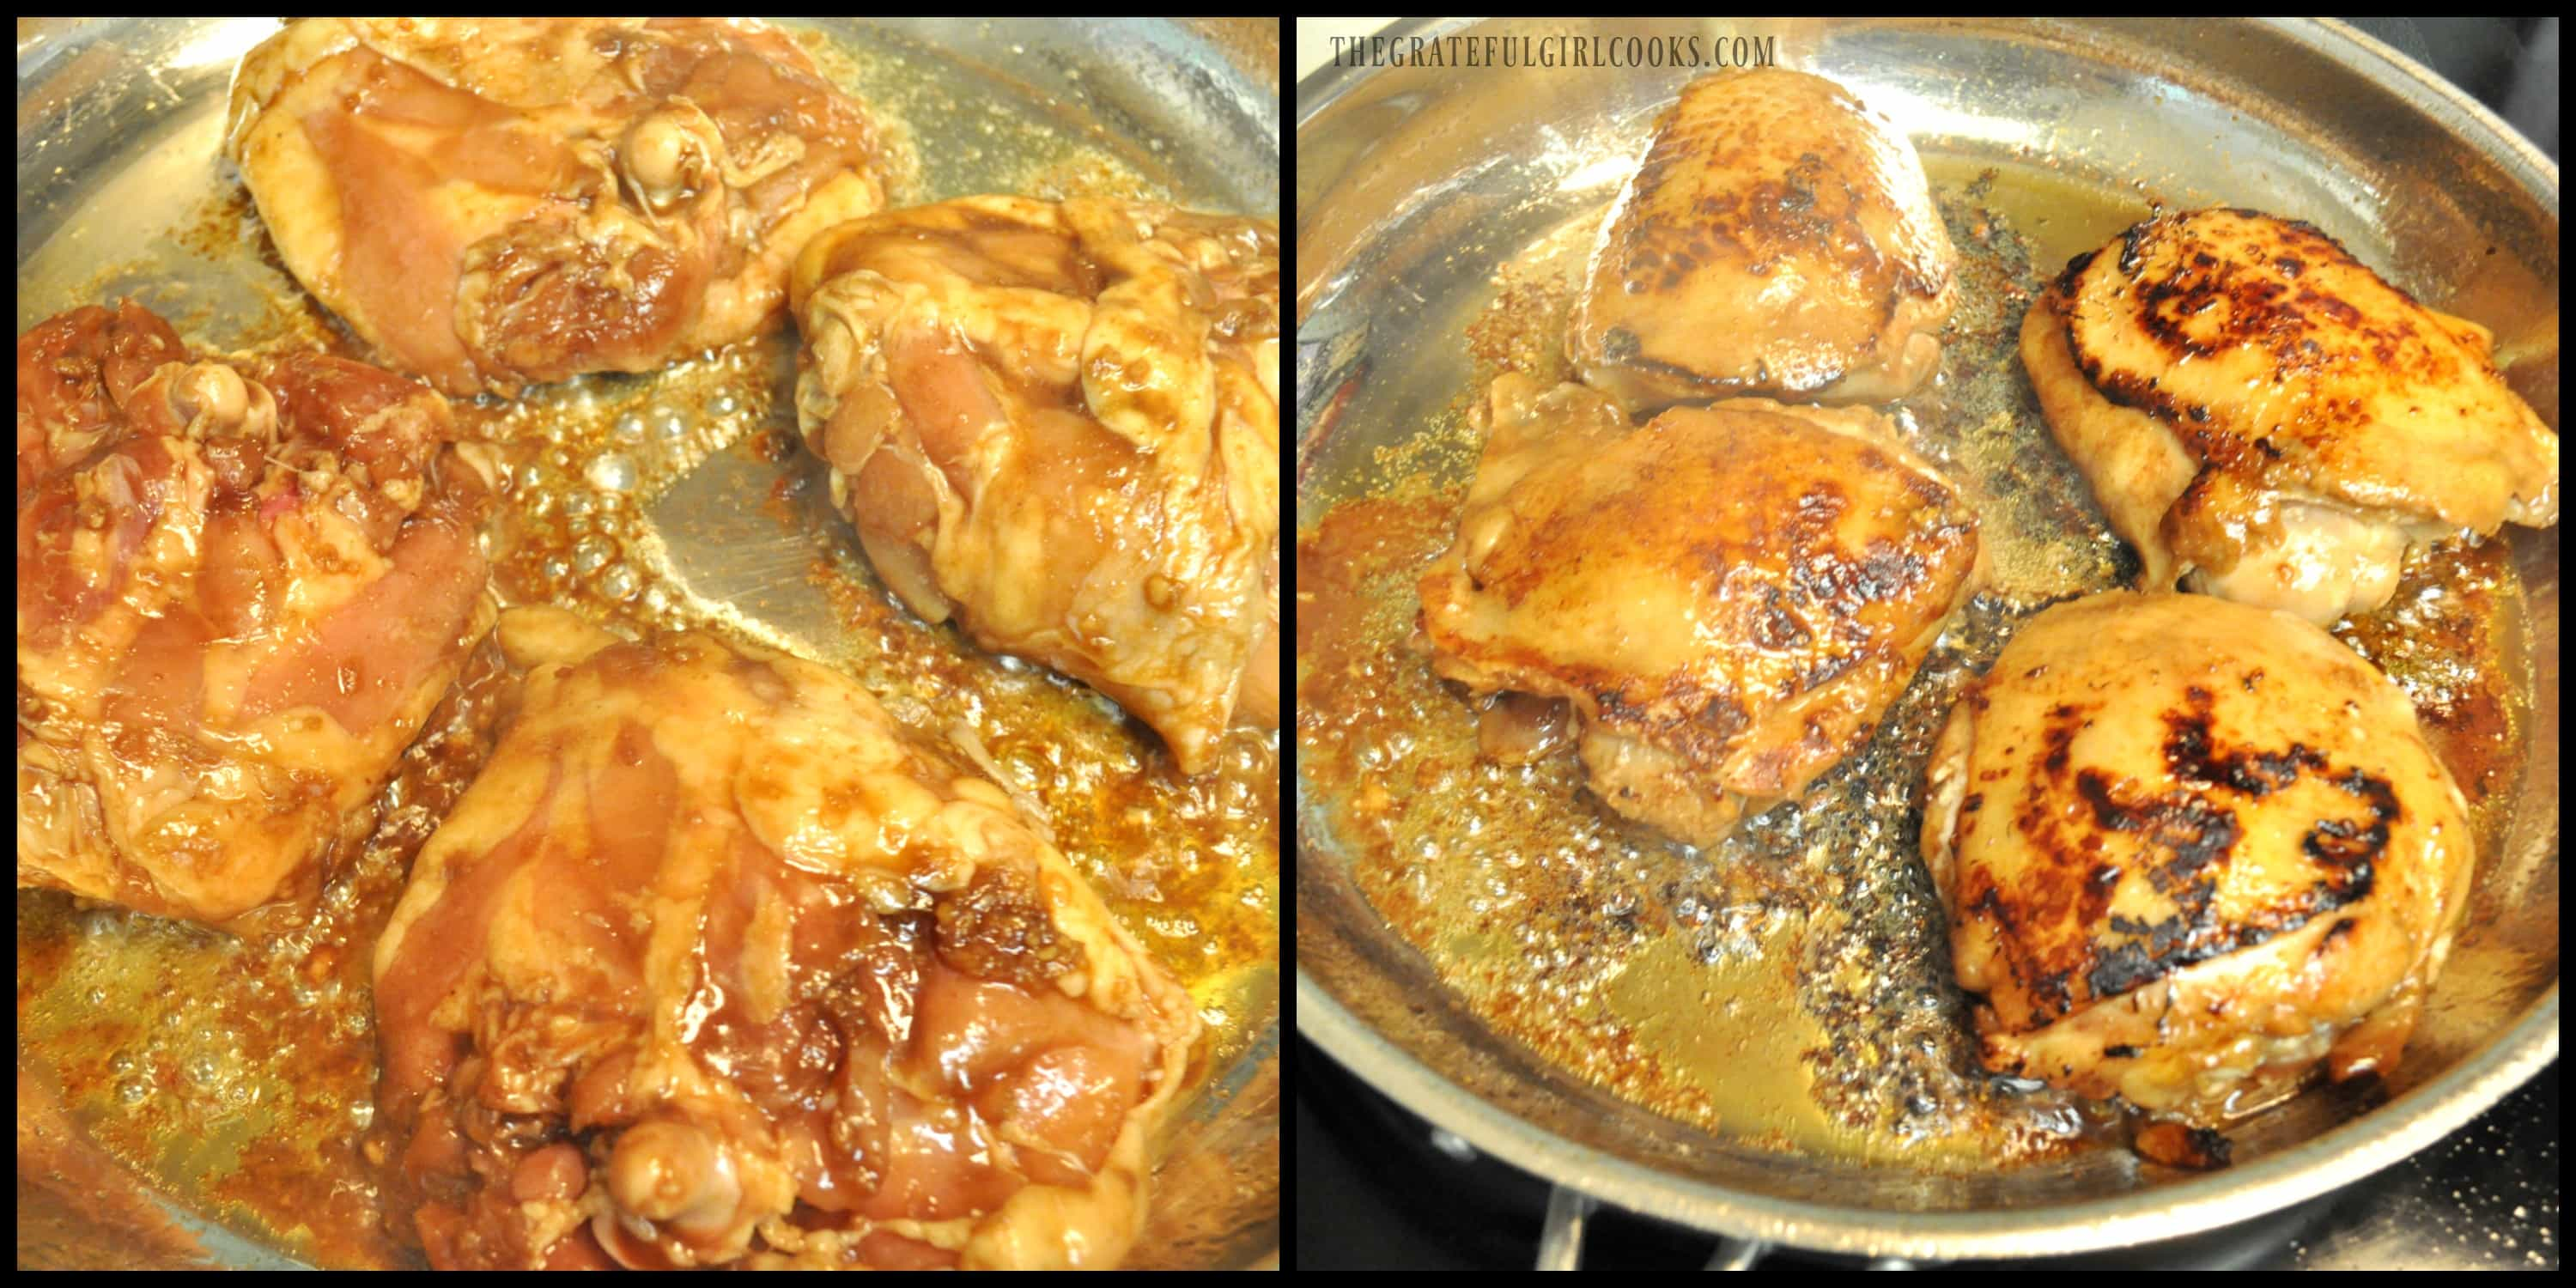 Hoisin Sriracha Chicken / The Grateful Girl Cooks!